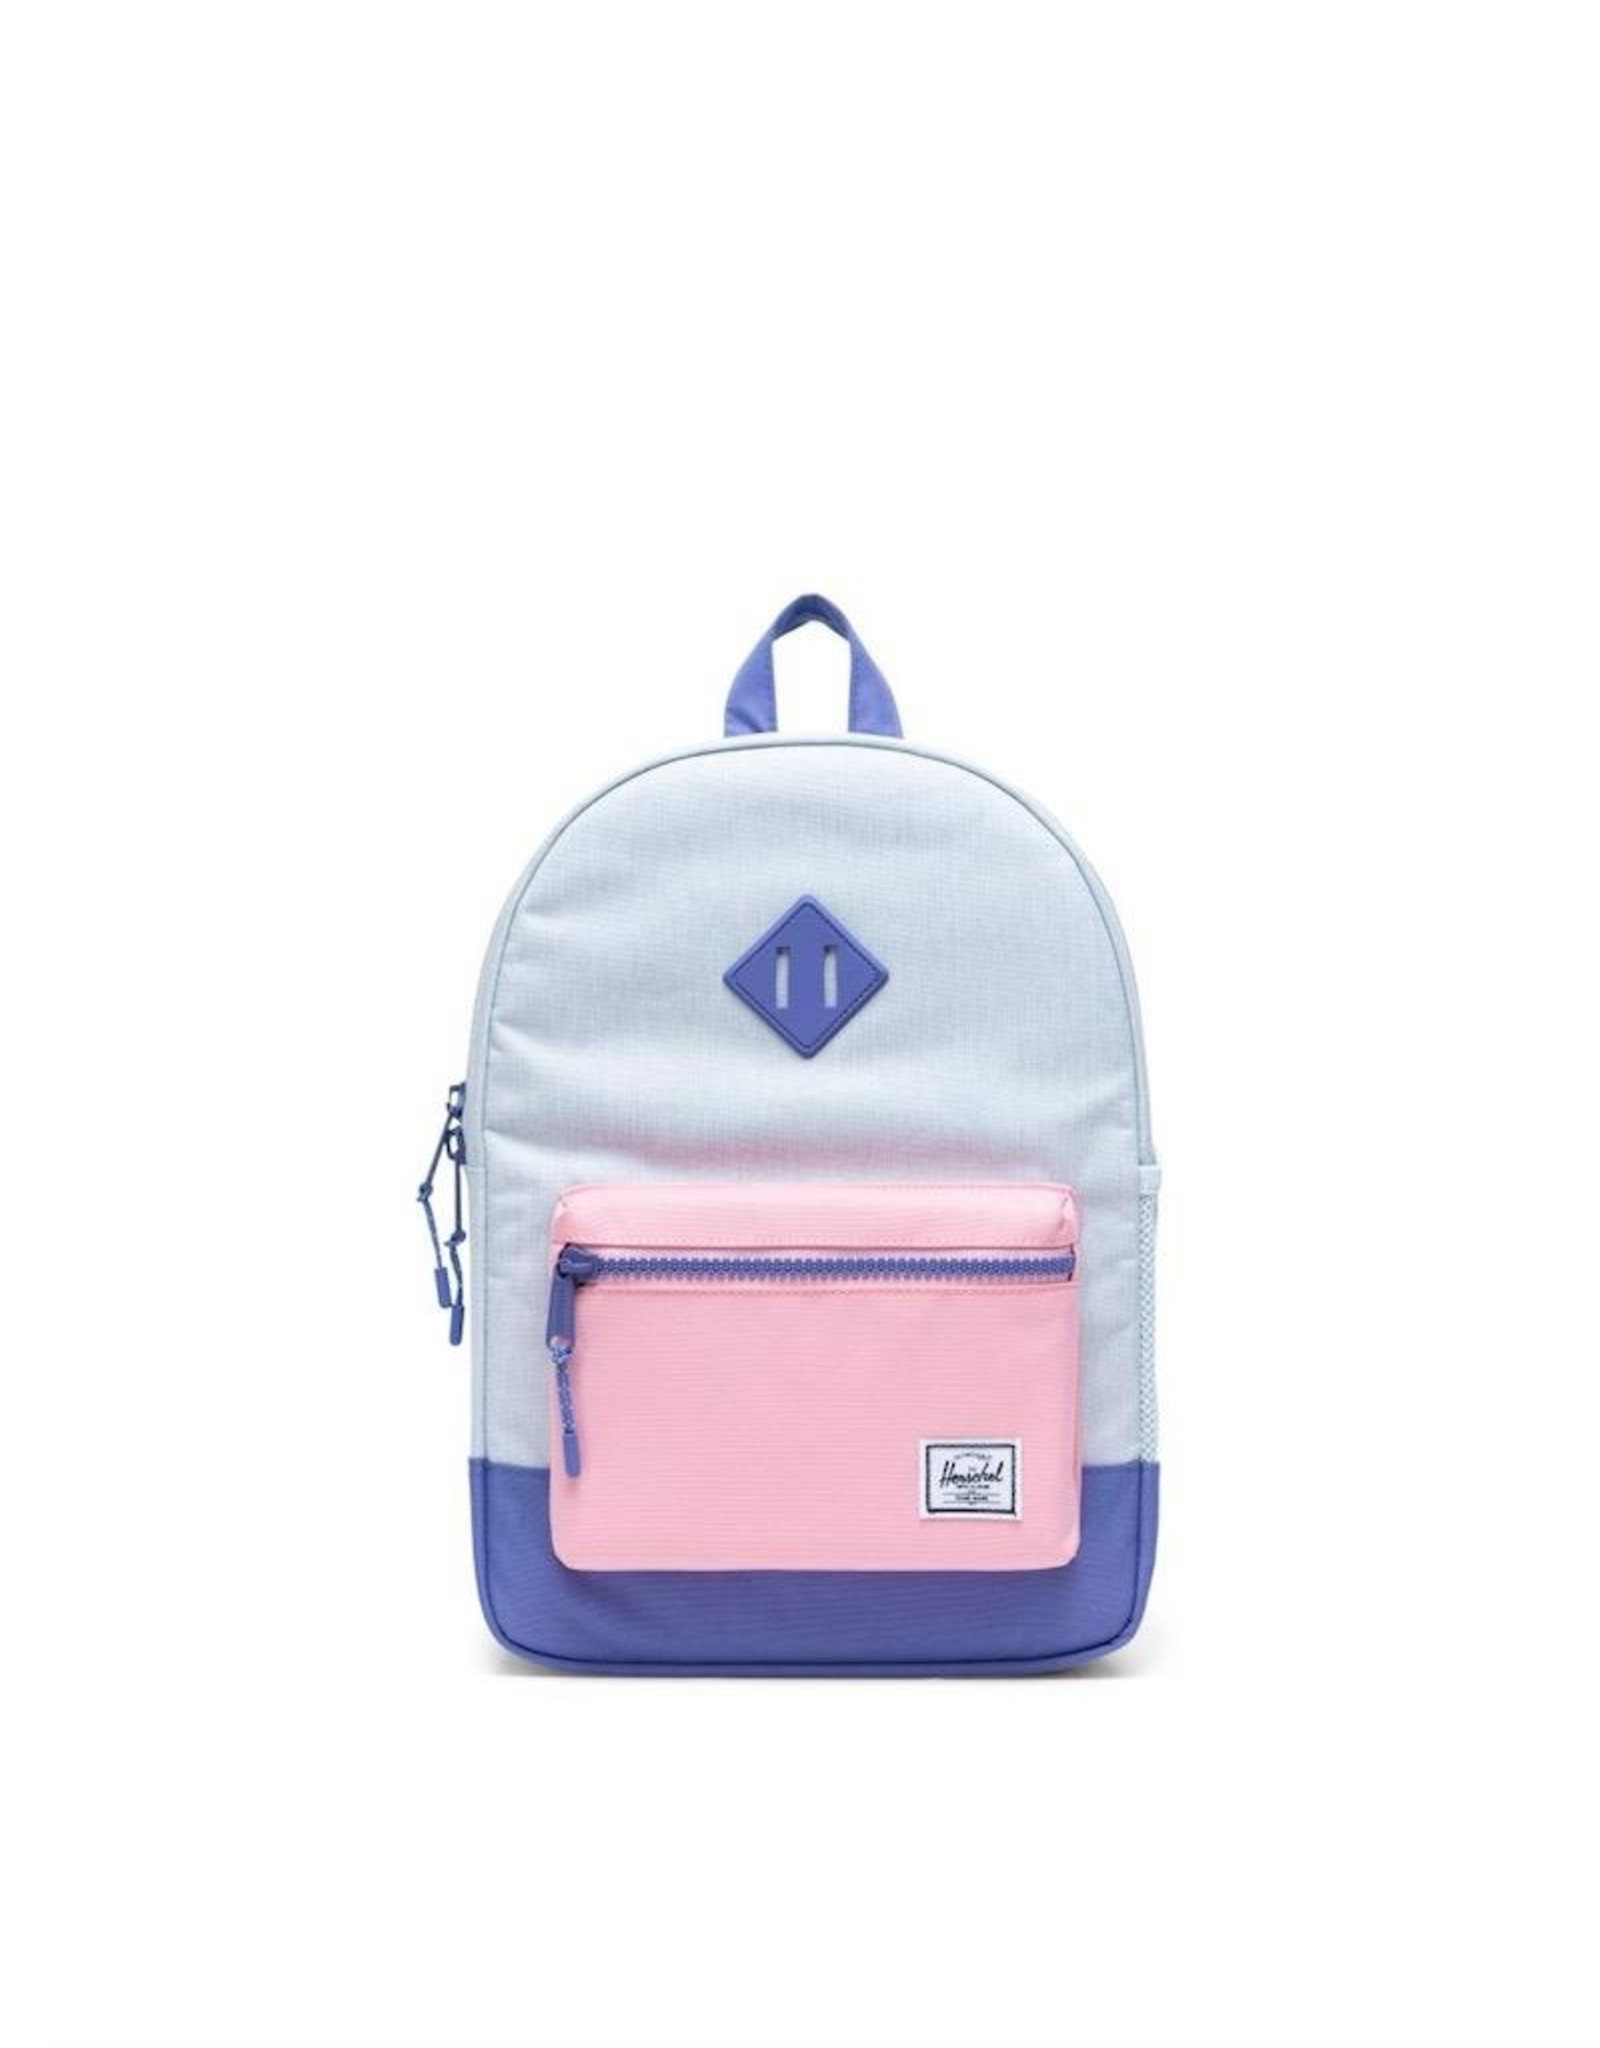 Herschel Supply Co. Heritage Backpack | Youth, Ballad Blue Pastel Crosshatch/Candy Pink/Dusted Peri, 16L